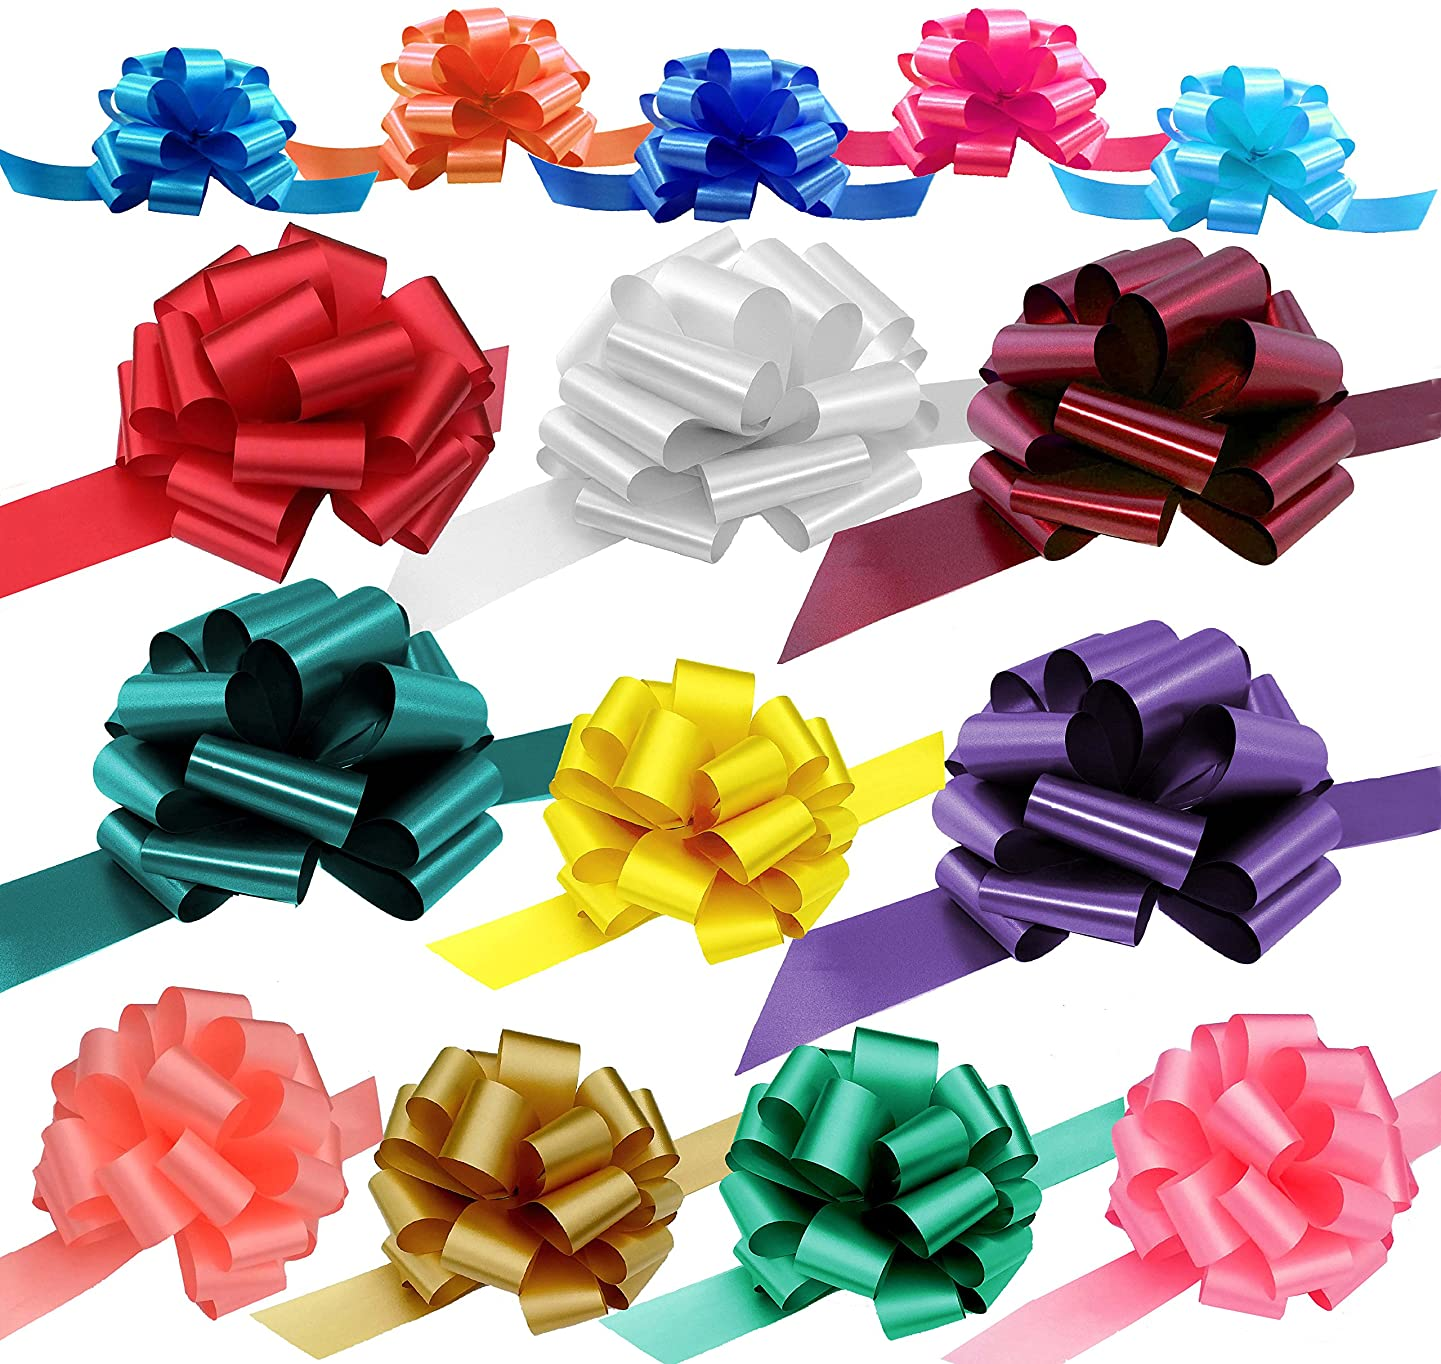 Assorted Gift Pull Bows for Easter, Christmas, Birthdays - Various Sizes, Set of 15, Red, Blue, White, Green, Valentine's Day, Variety Pack, Mother's Day